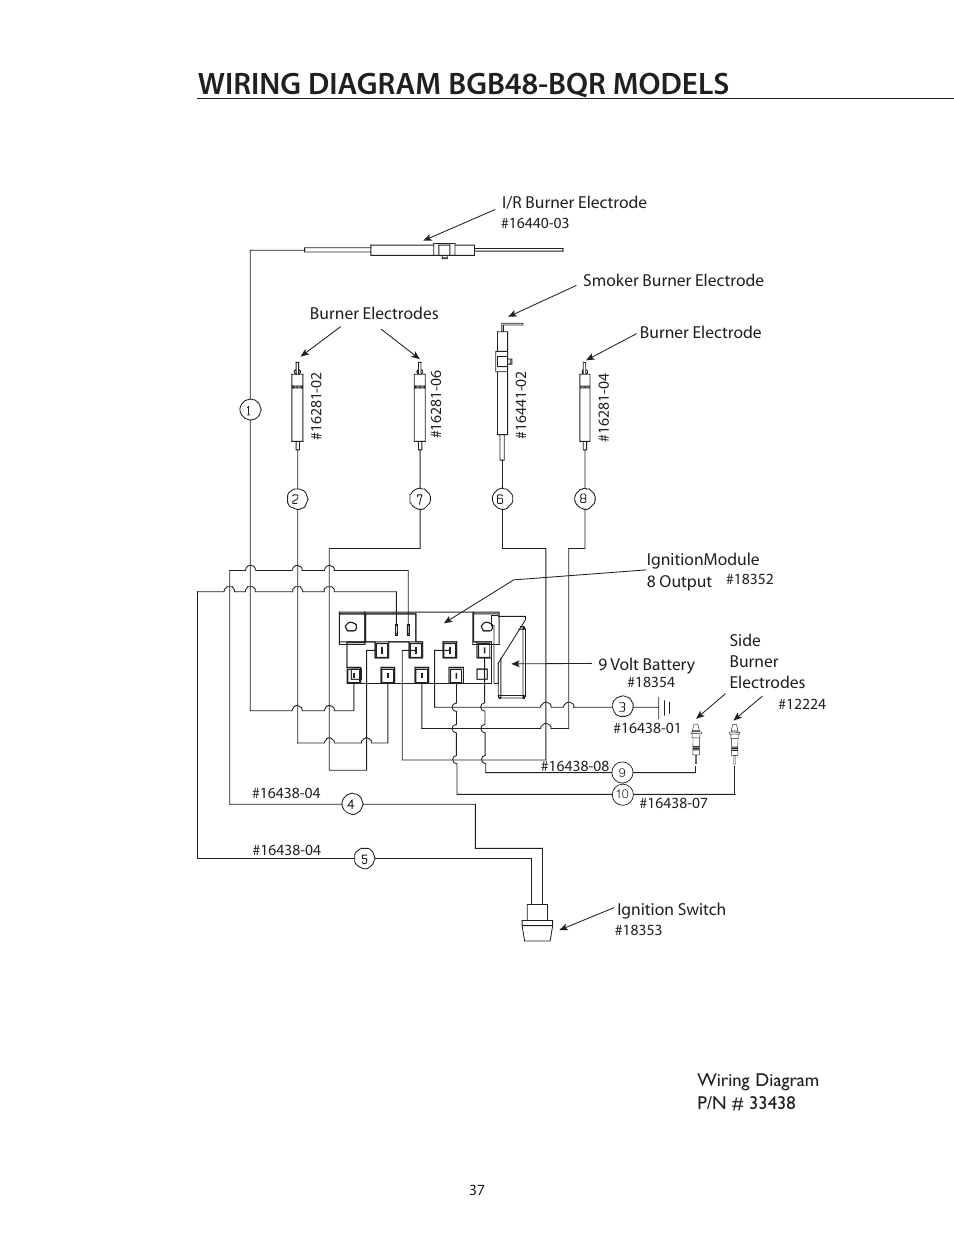 Wiring diagram bgb48-bqr models | DCS BGB36-BQAR User Manual | Page 38 / 42